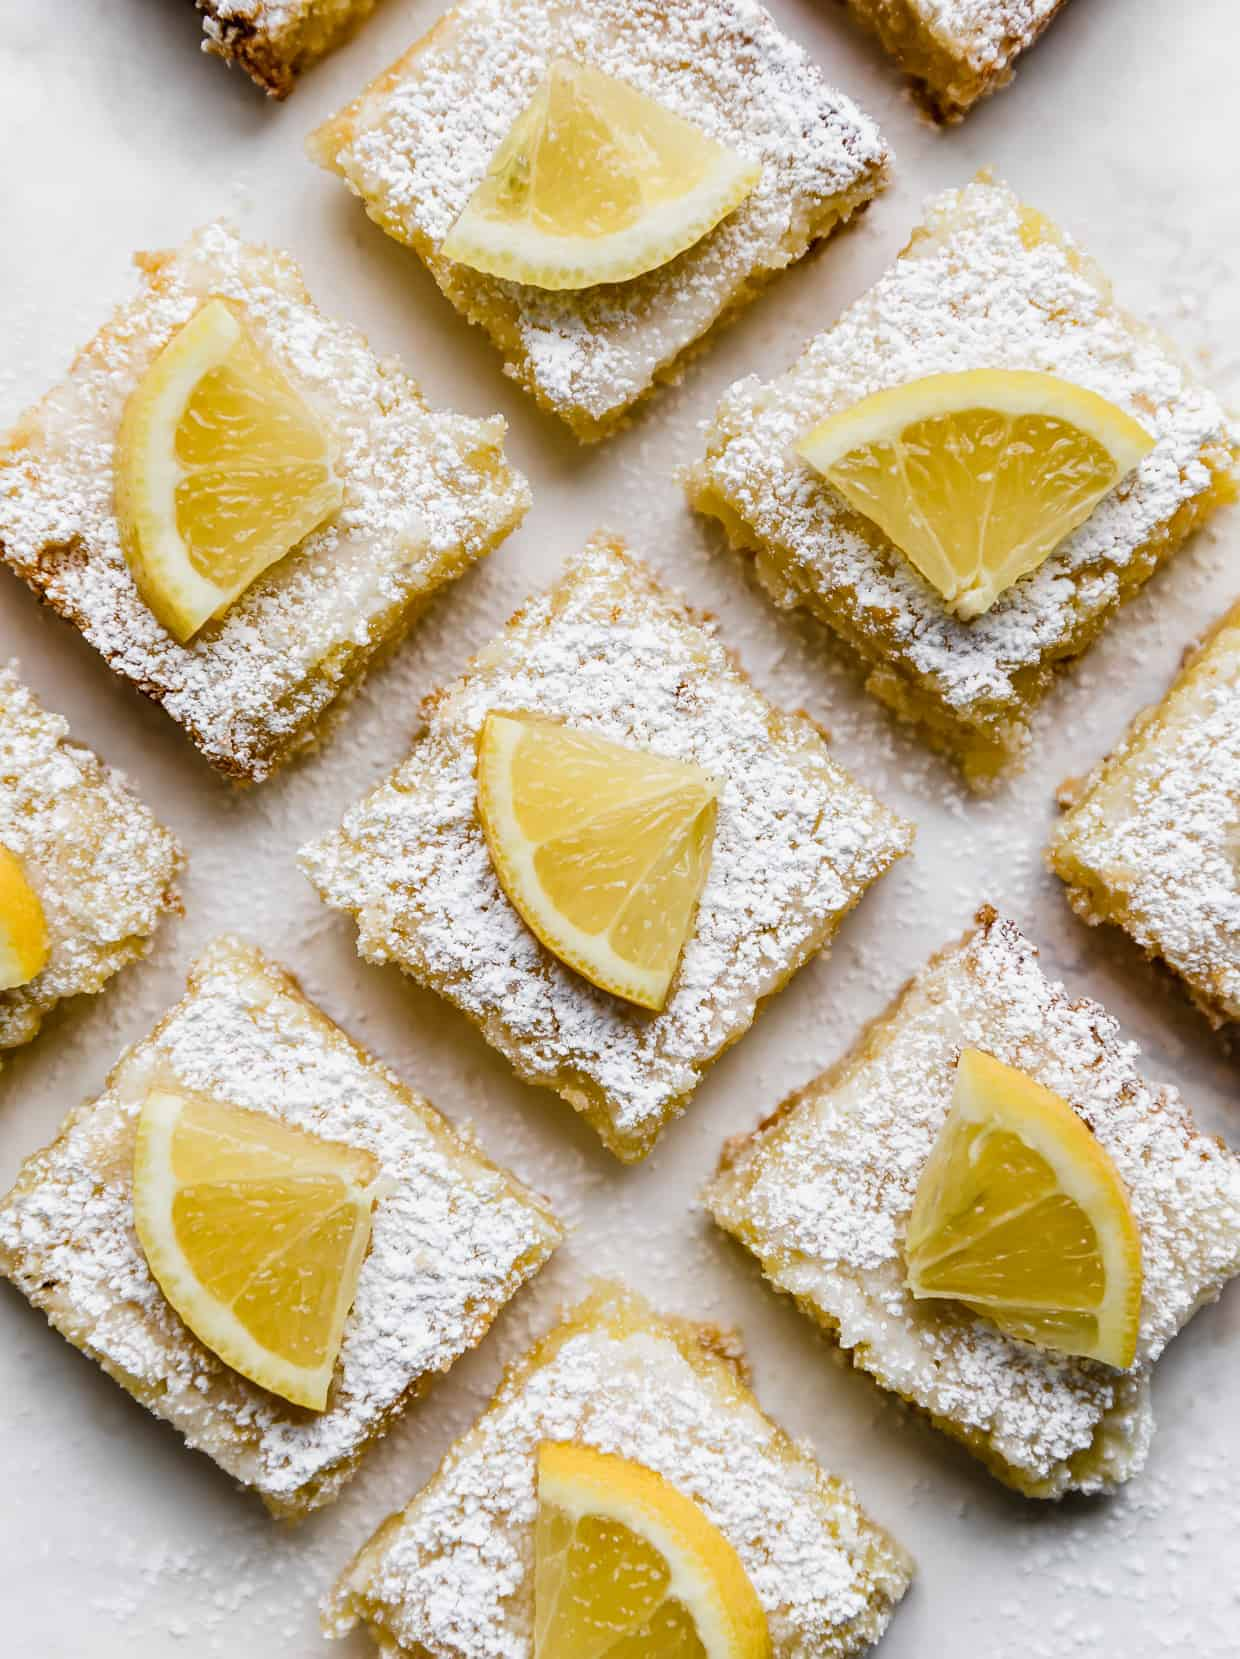 Overhead photo of lemon bars against a white background with sliced lemon wedges on top of the powdered sugar dusted lemon squares.